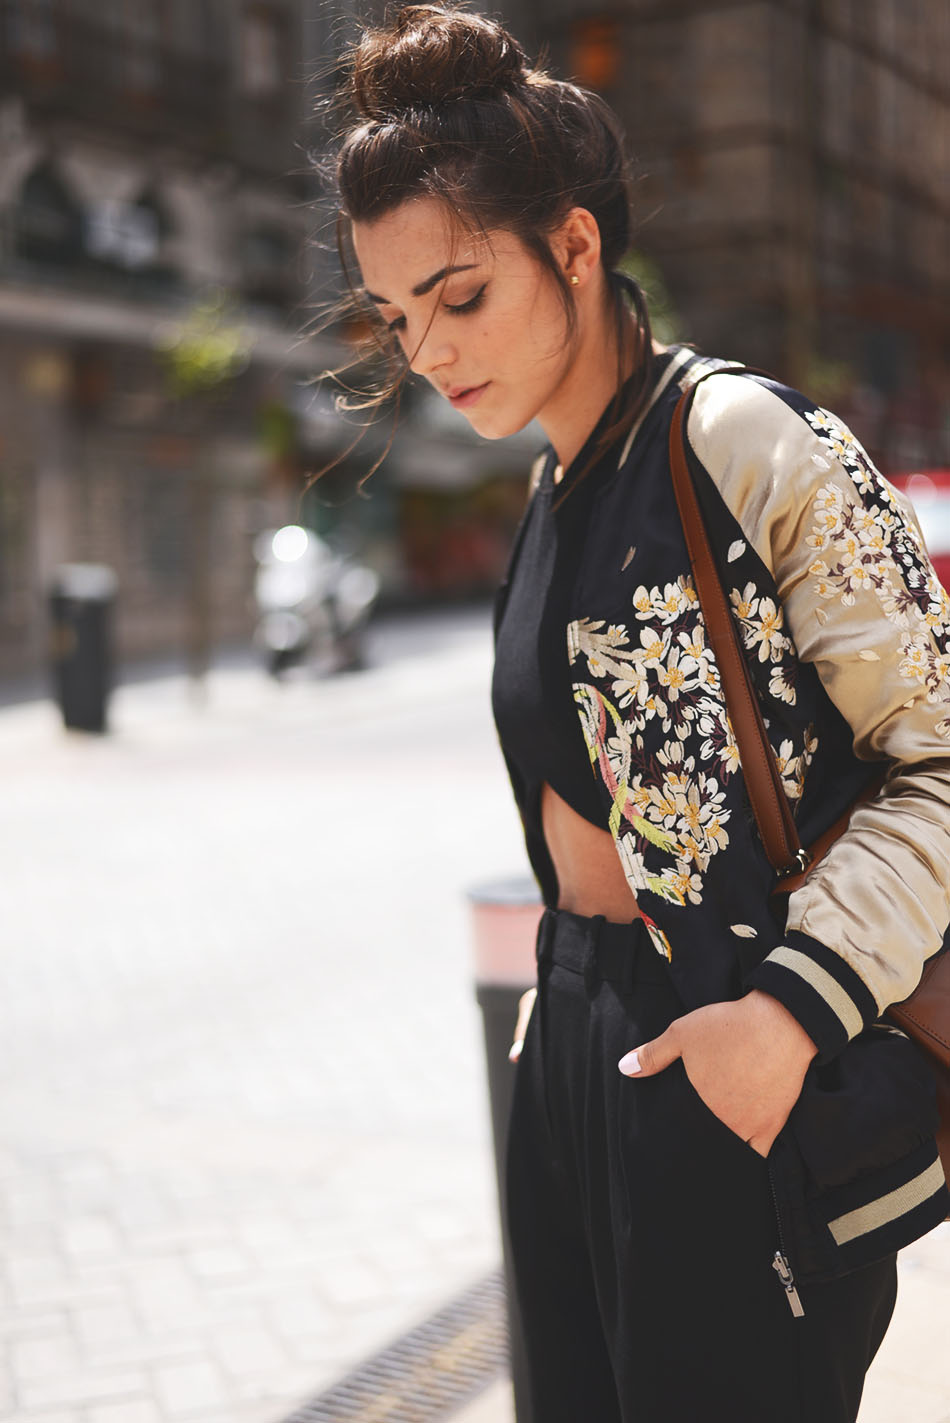 TheFashionThroughMyEyes - Satin Embroidered Bomber Jacket